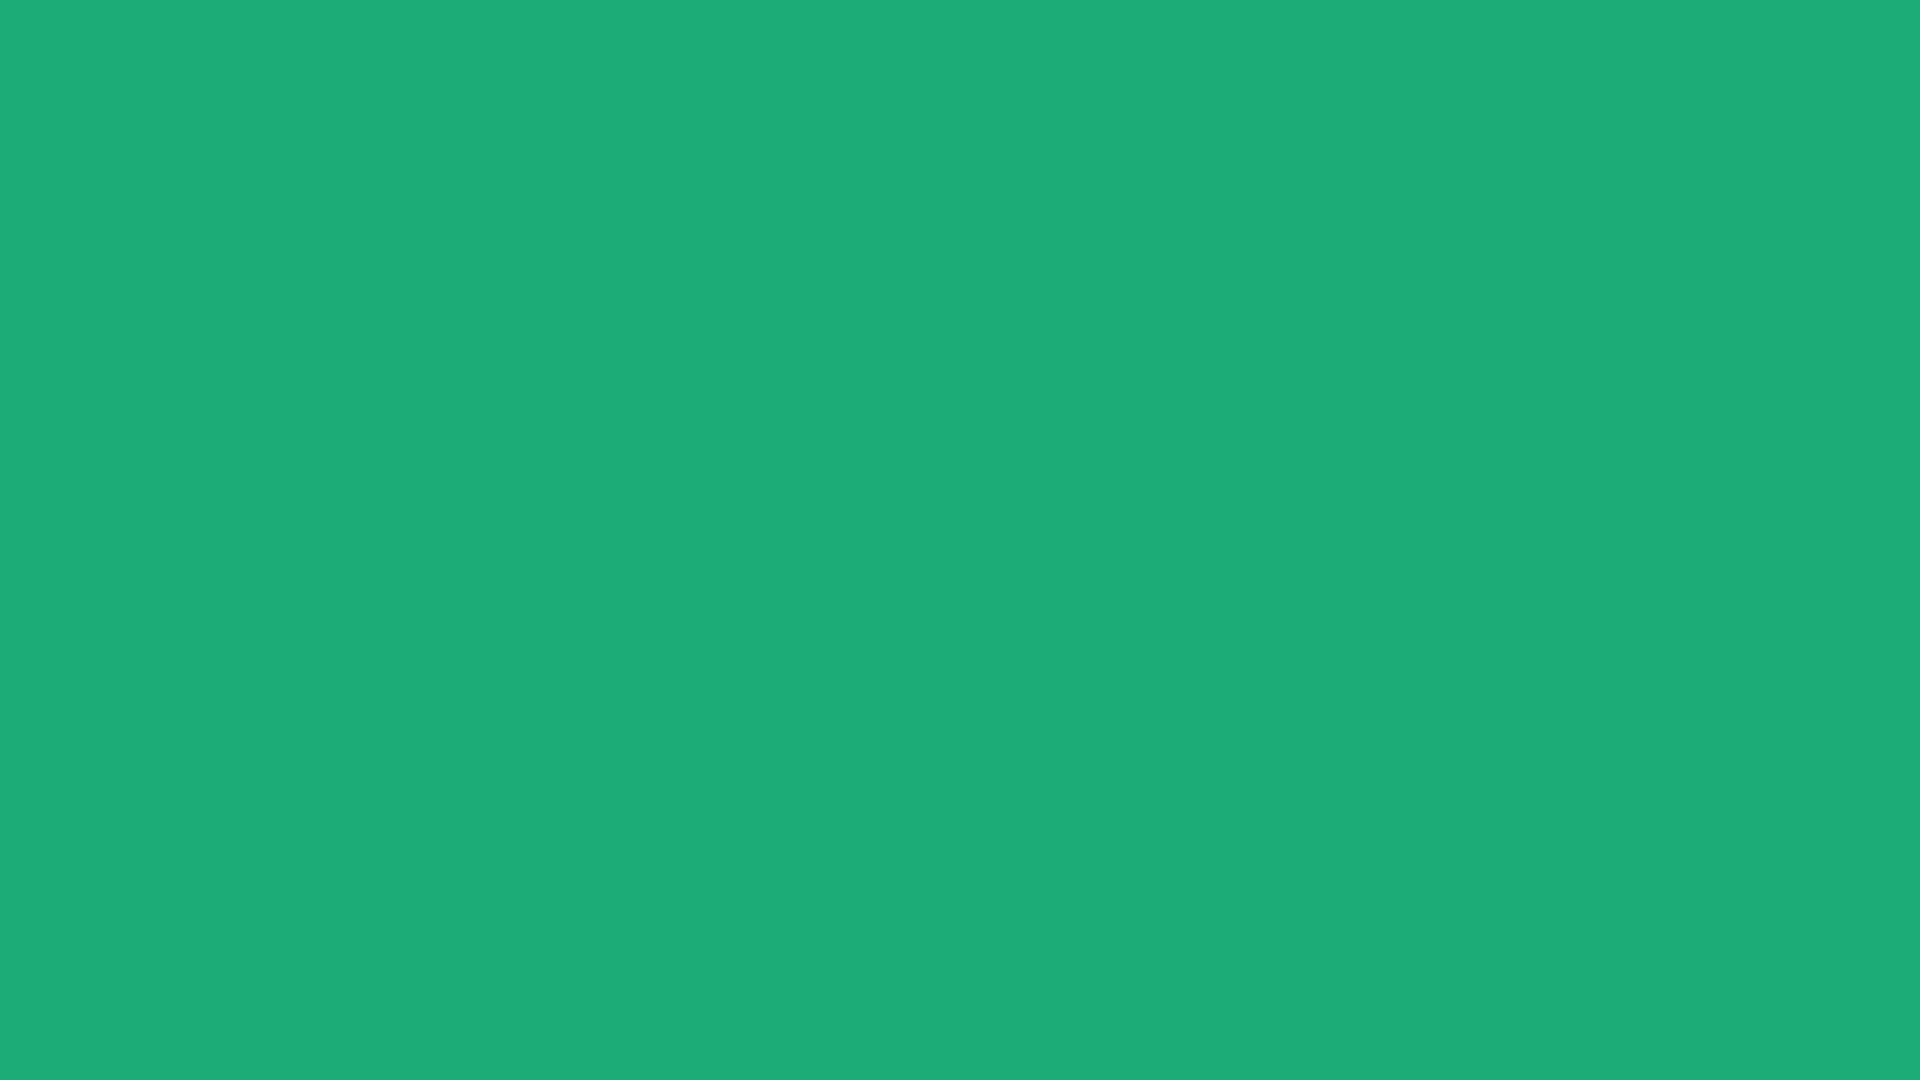 1920x1080 Green Crayola Solid Color Background